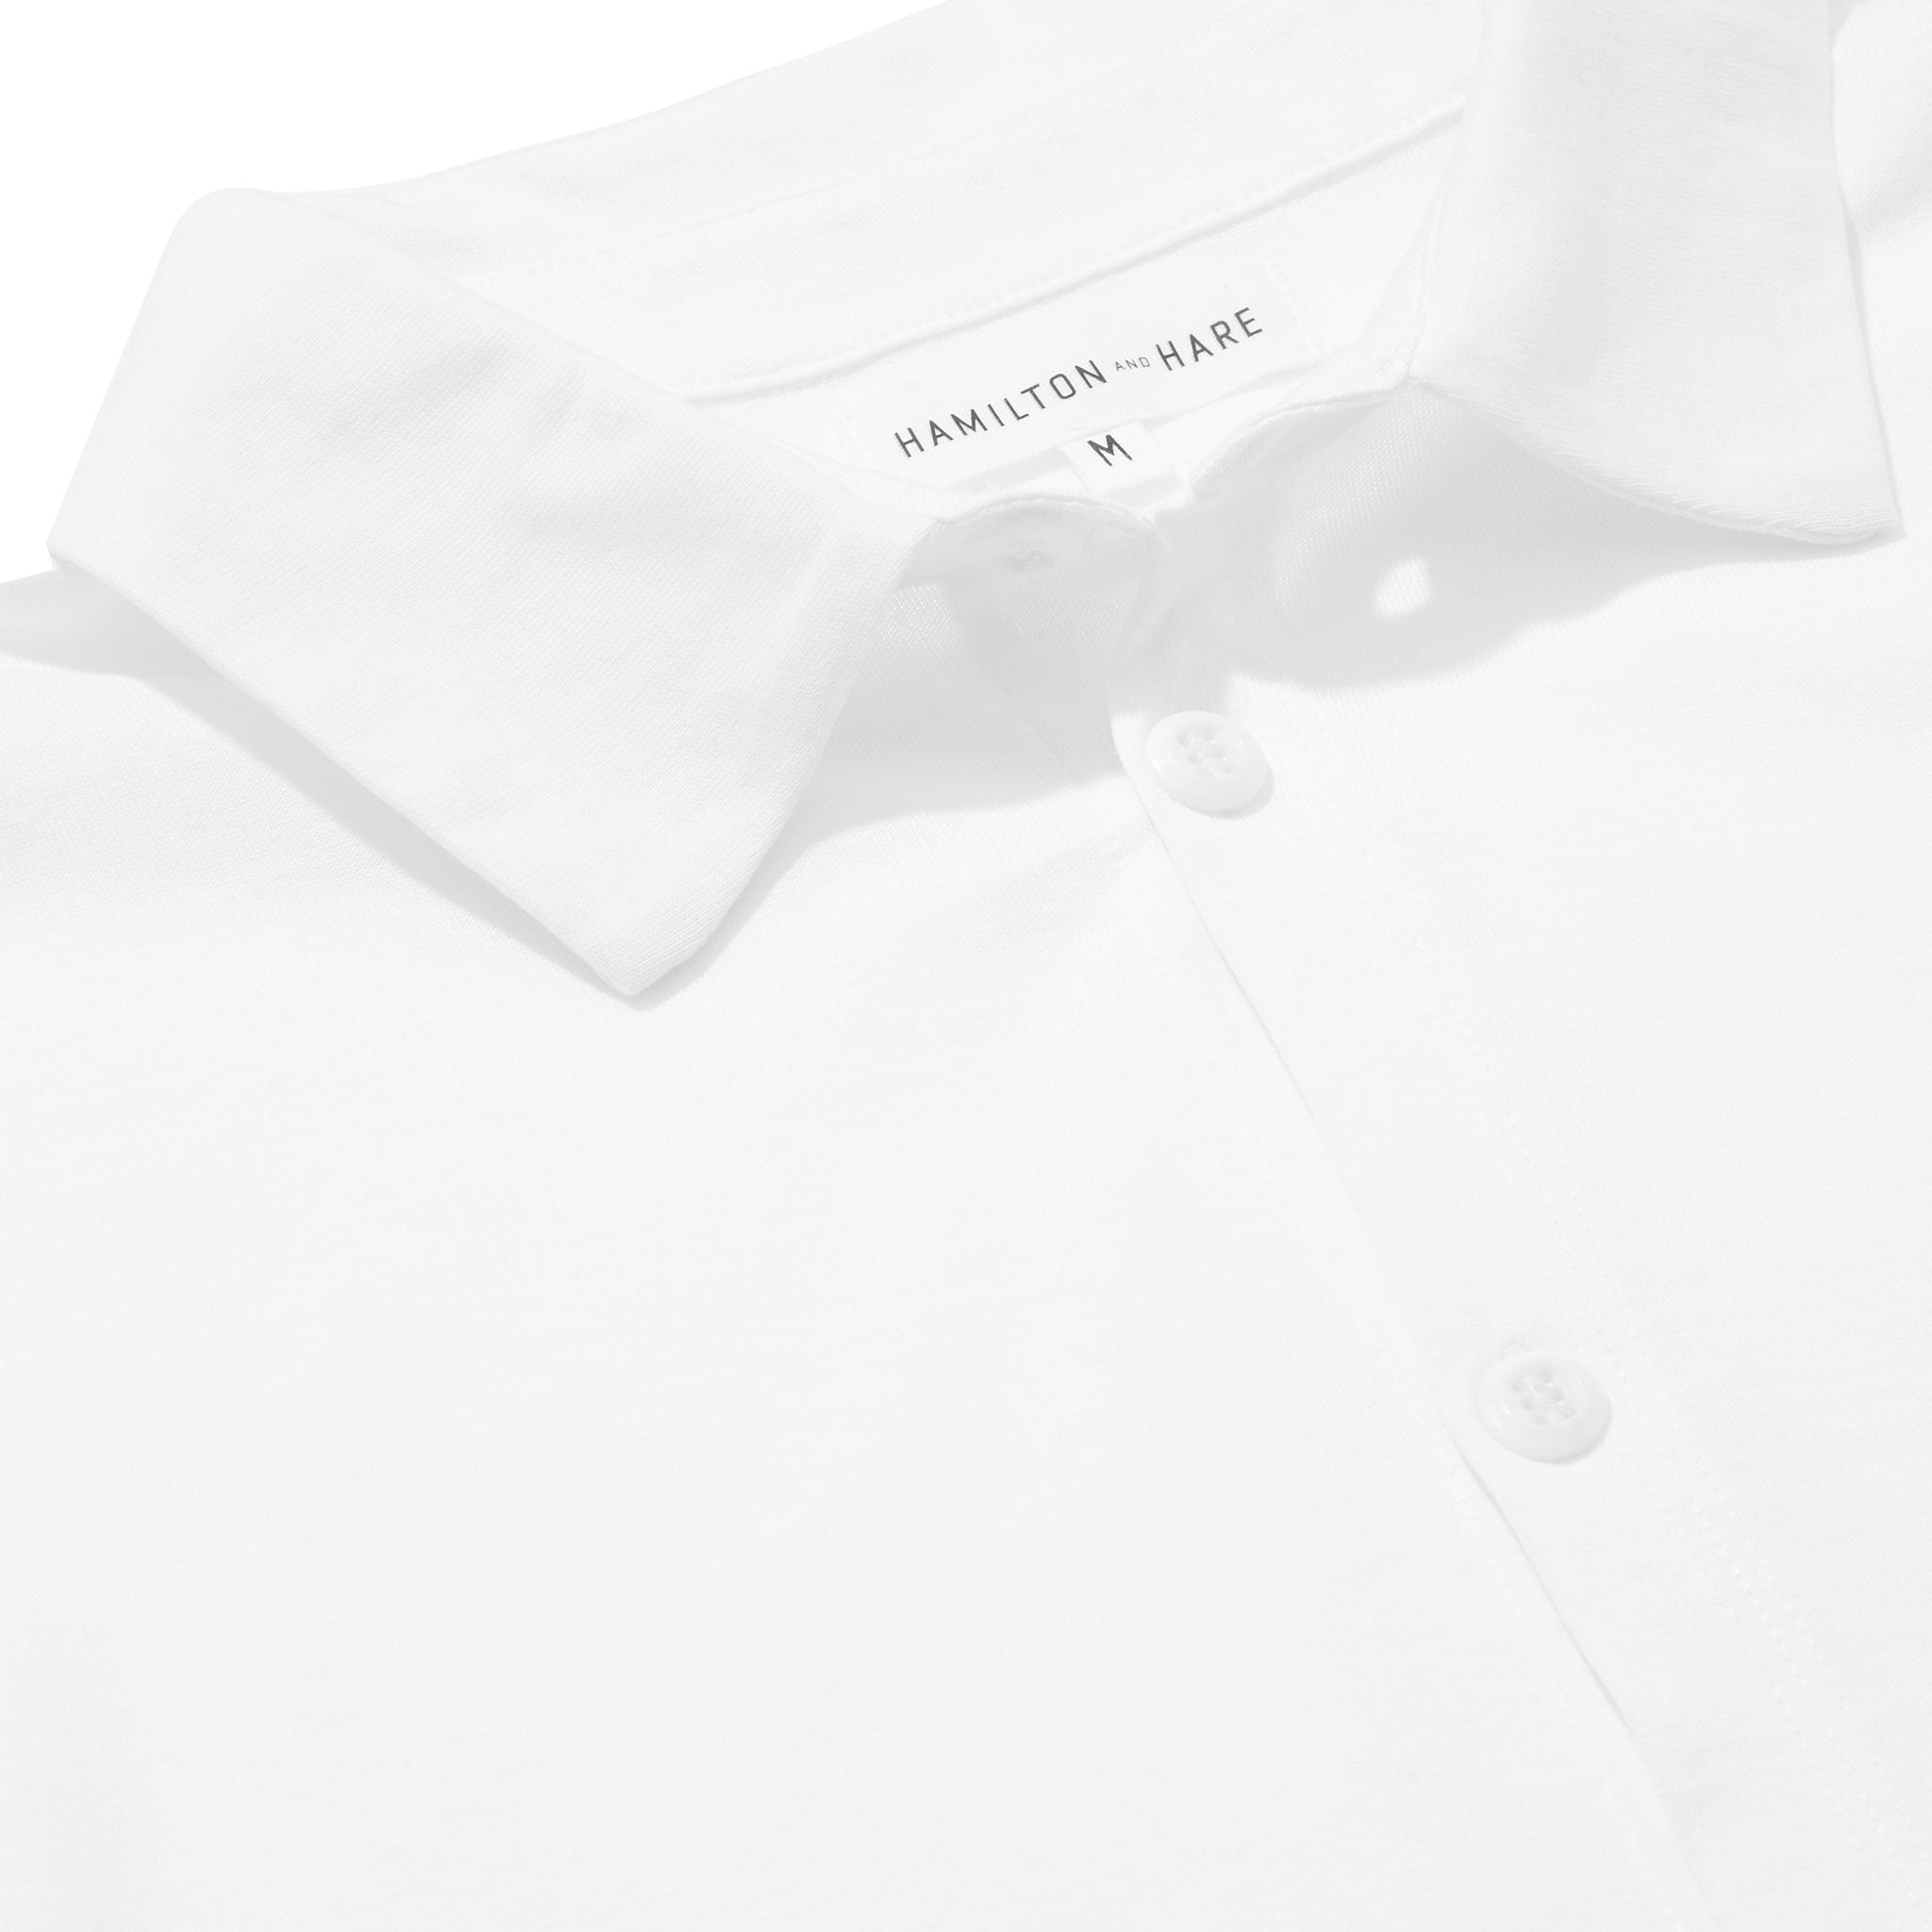 Hamilton and Hare Slip-on Shirt White